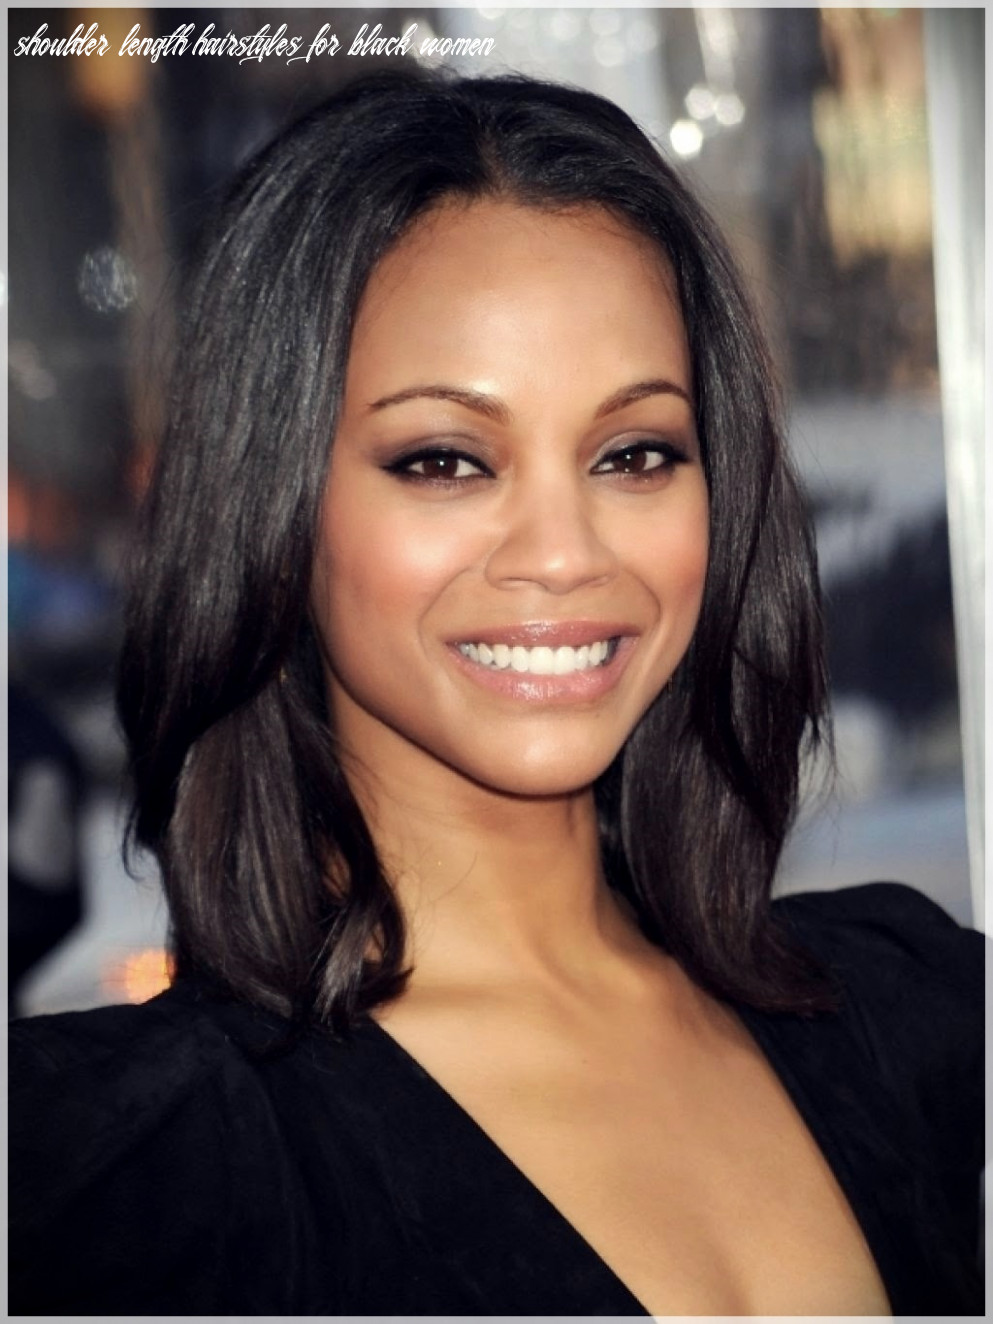 Top 11 hairstyles for black women 11 | shoulder length hairstyles for black women